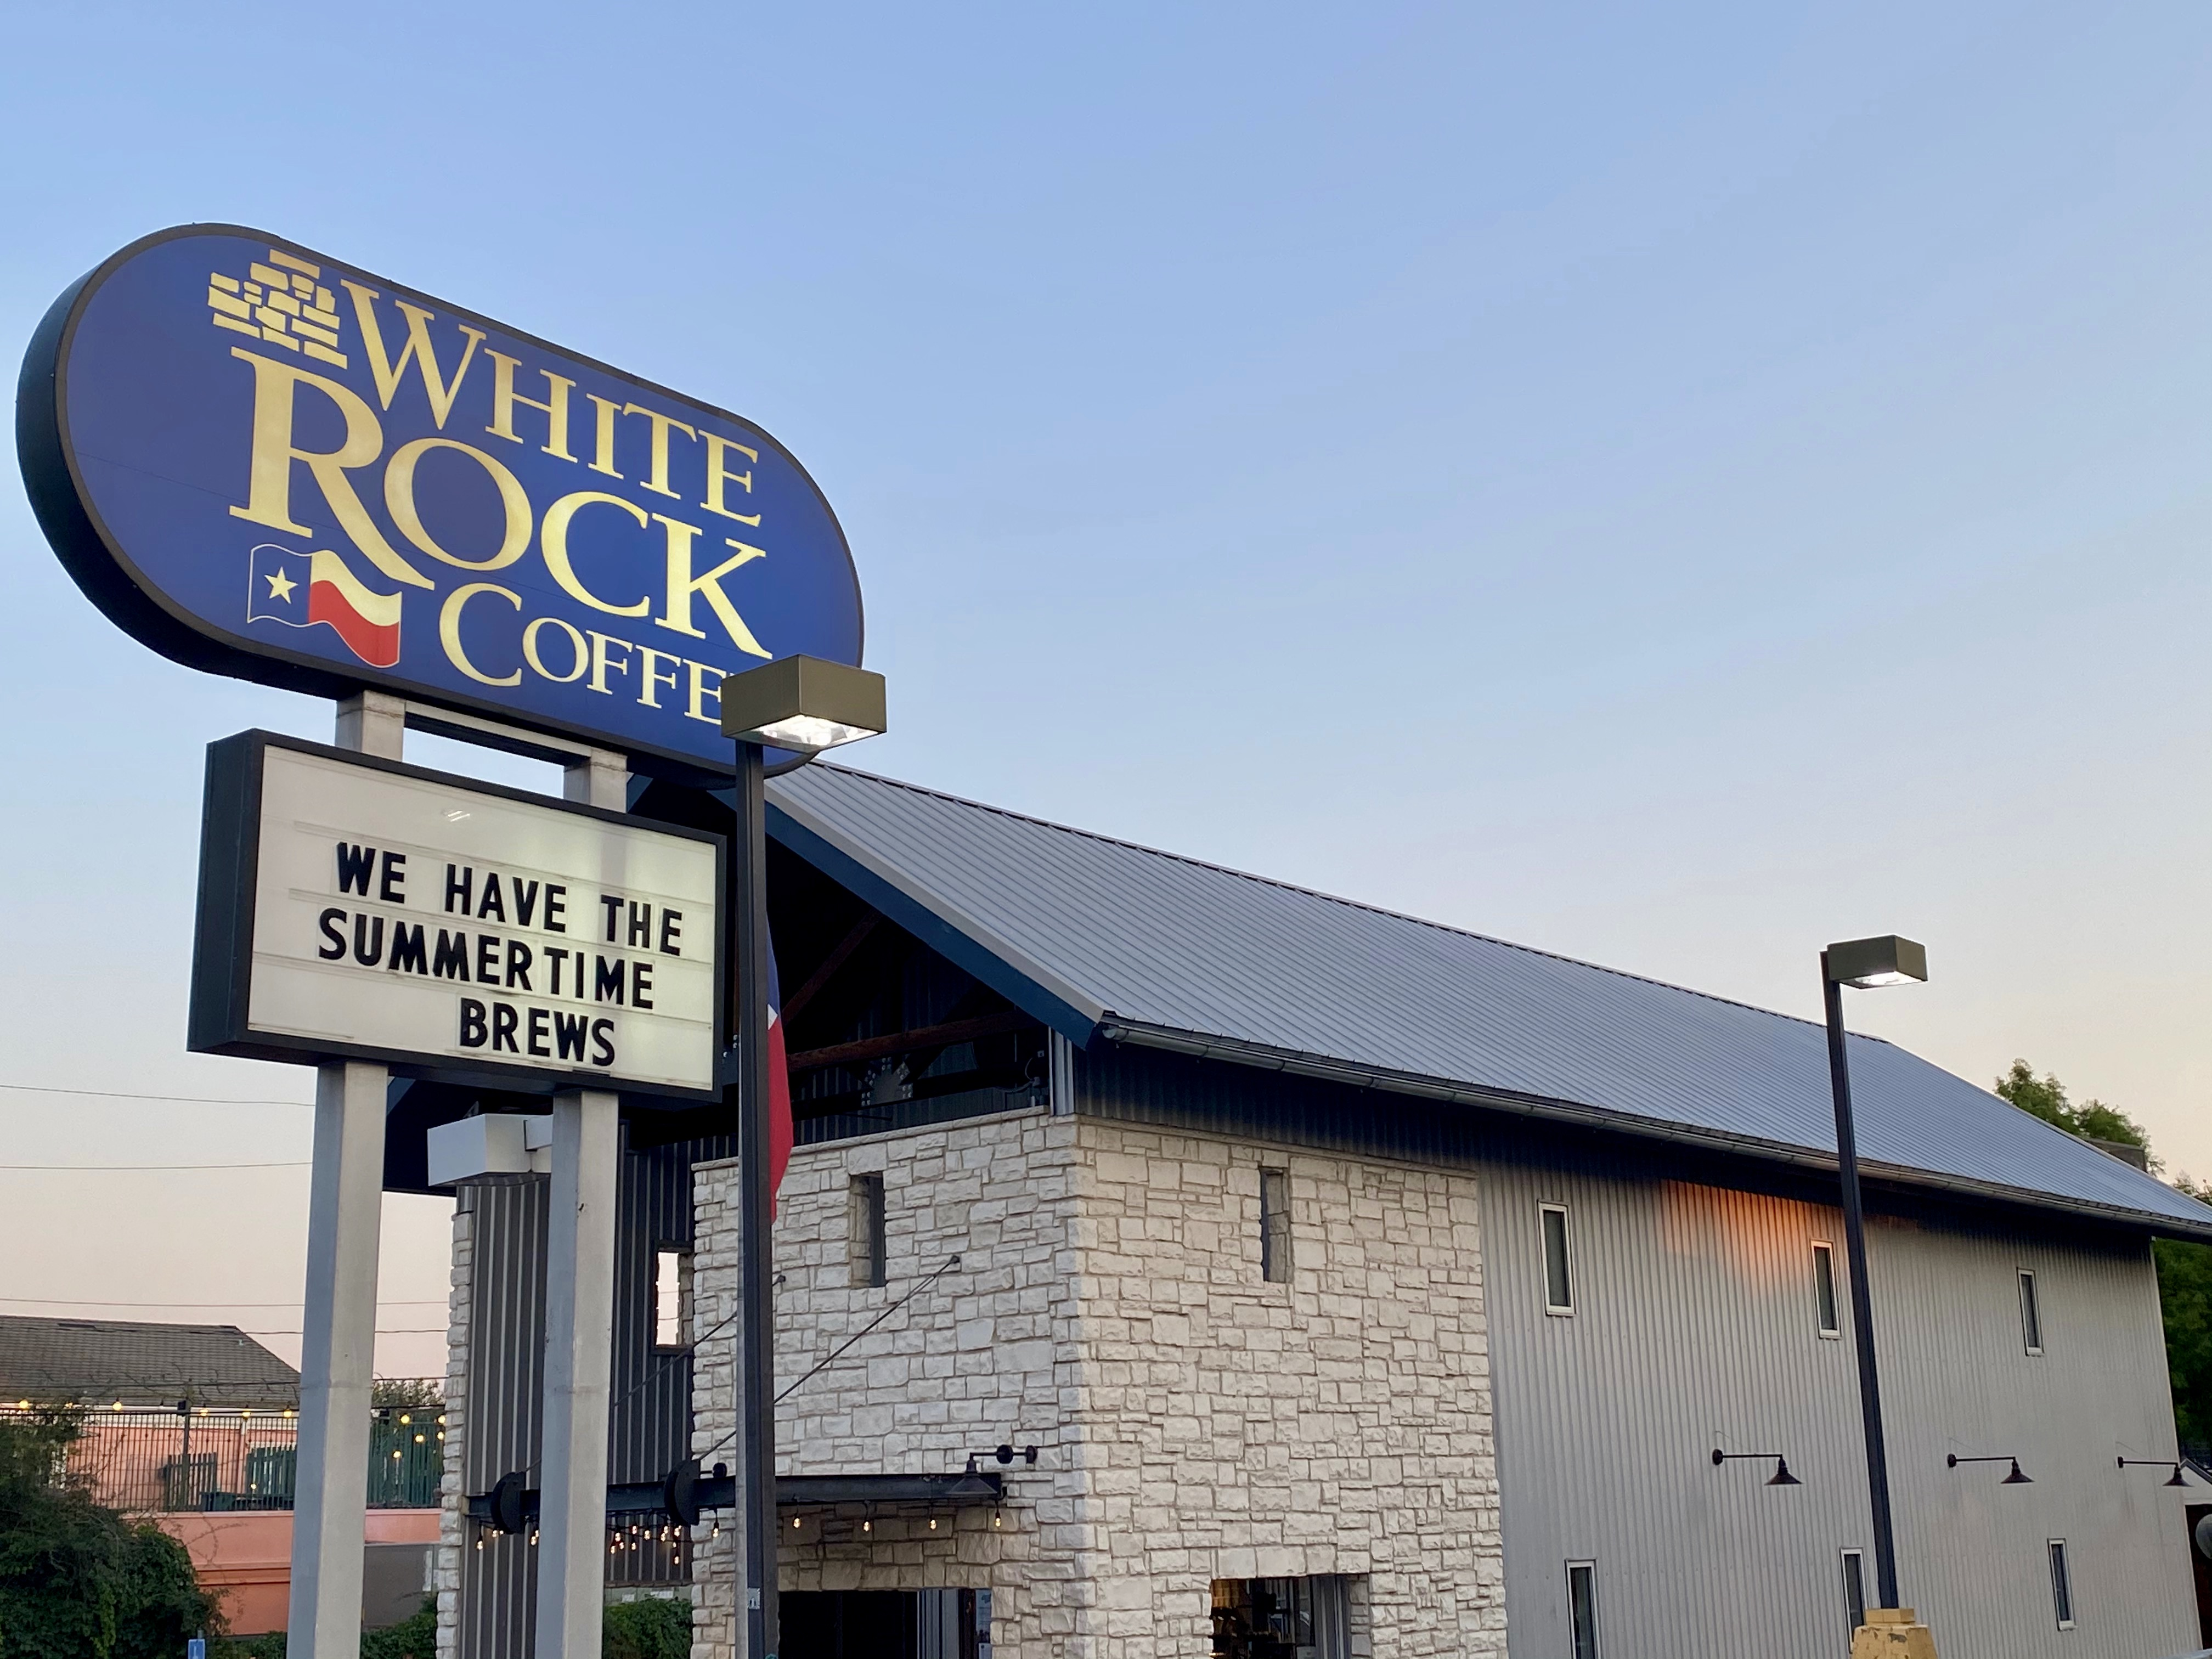 White Rock Coffee on E NW Highway, Lake Highlands